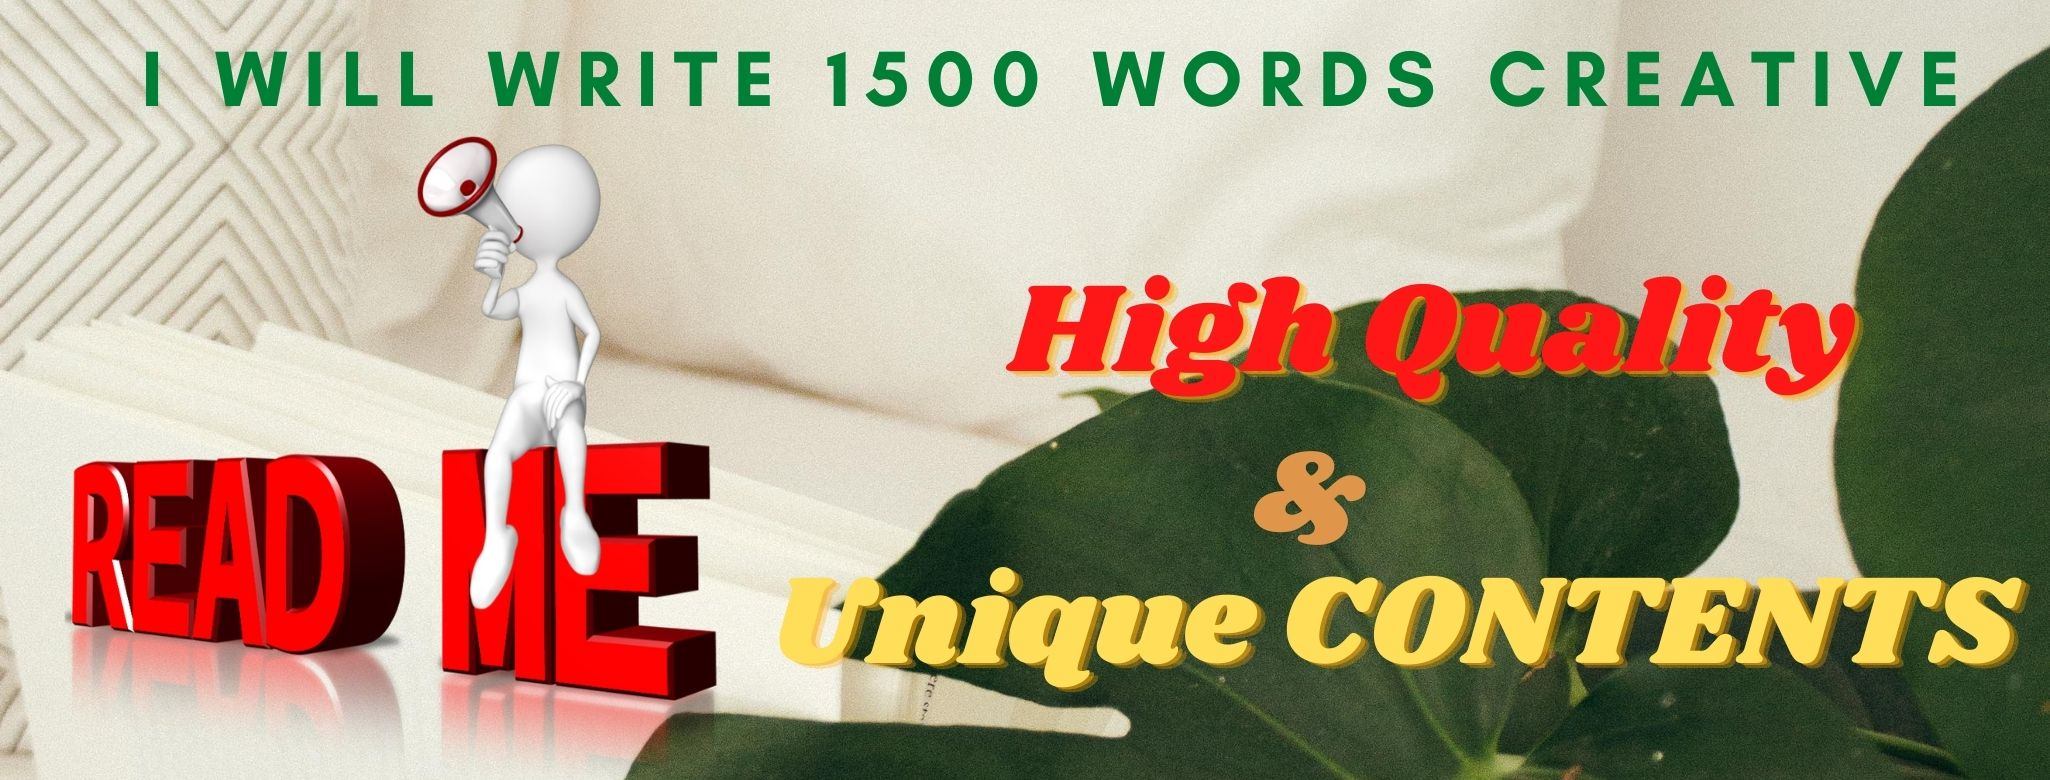 48 hour 1500 words creative article writing